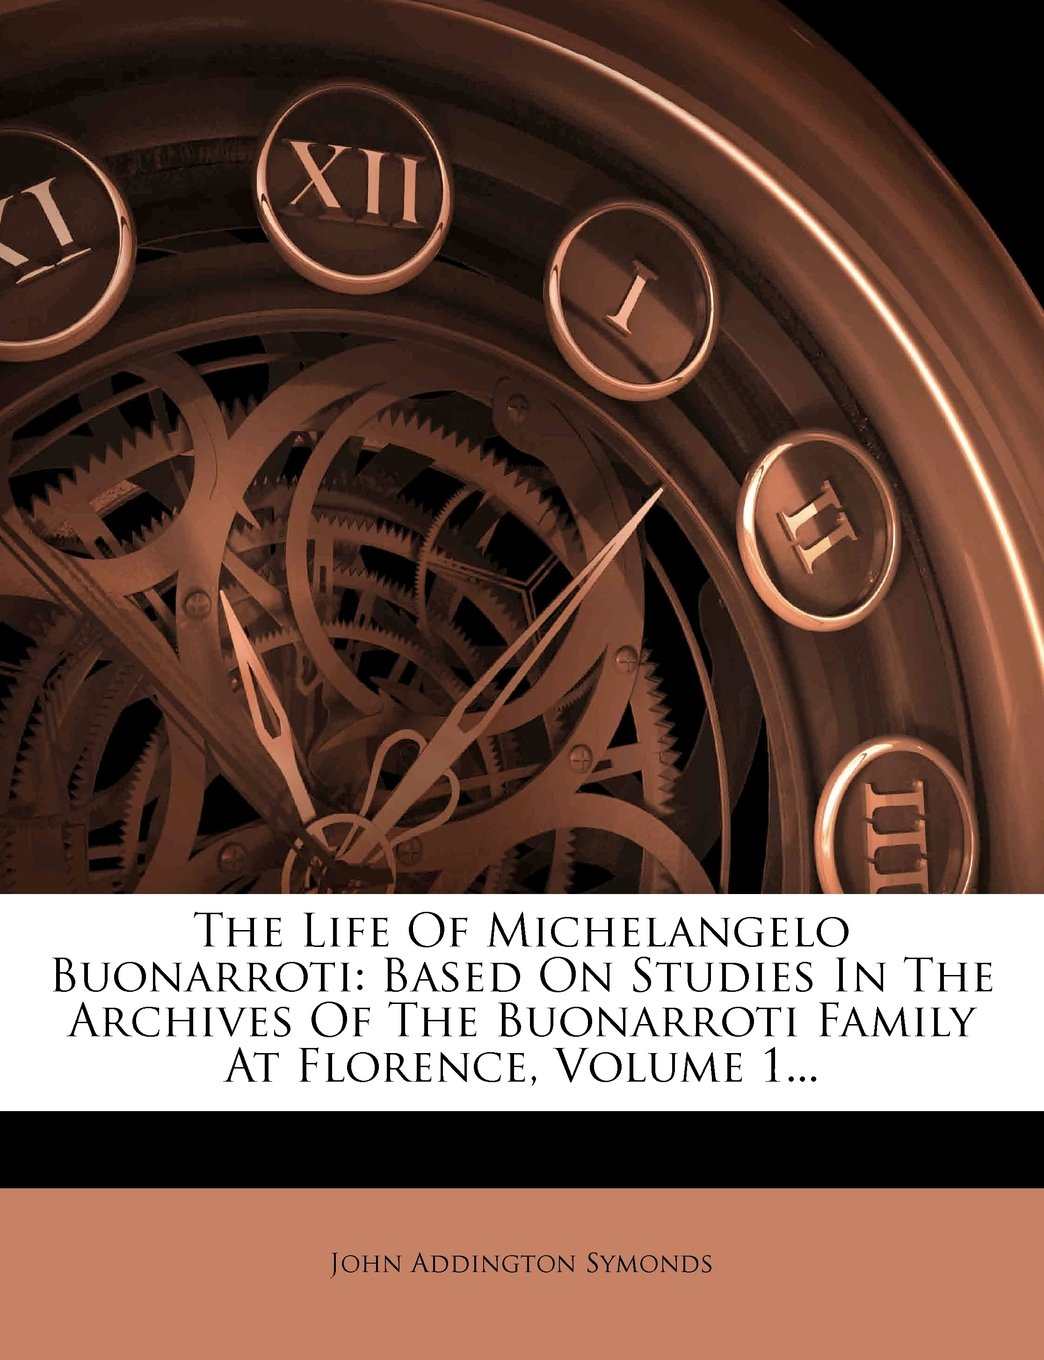 Read Online The Life Of Michelangelo Buonarroti: Based On Studies In The Archives Of The Buonarroti Family At Florence, Volume 1... pdf epub